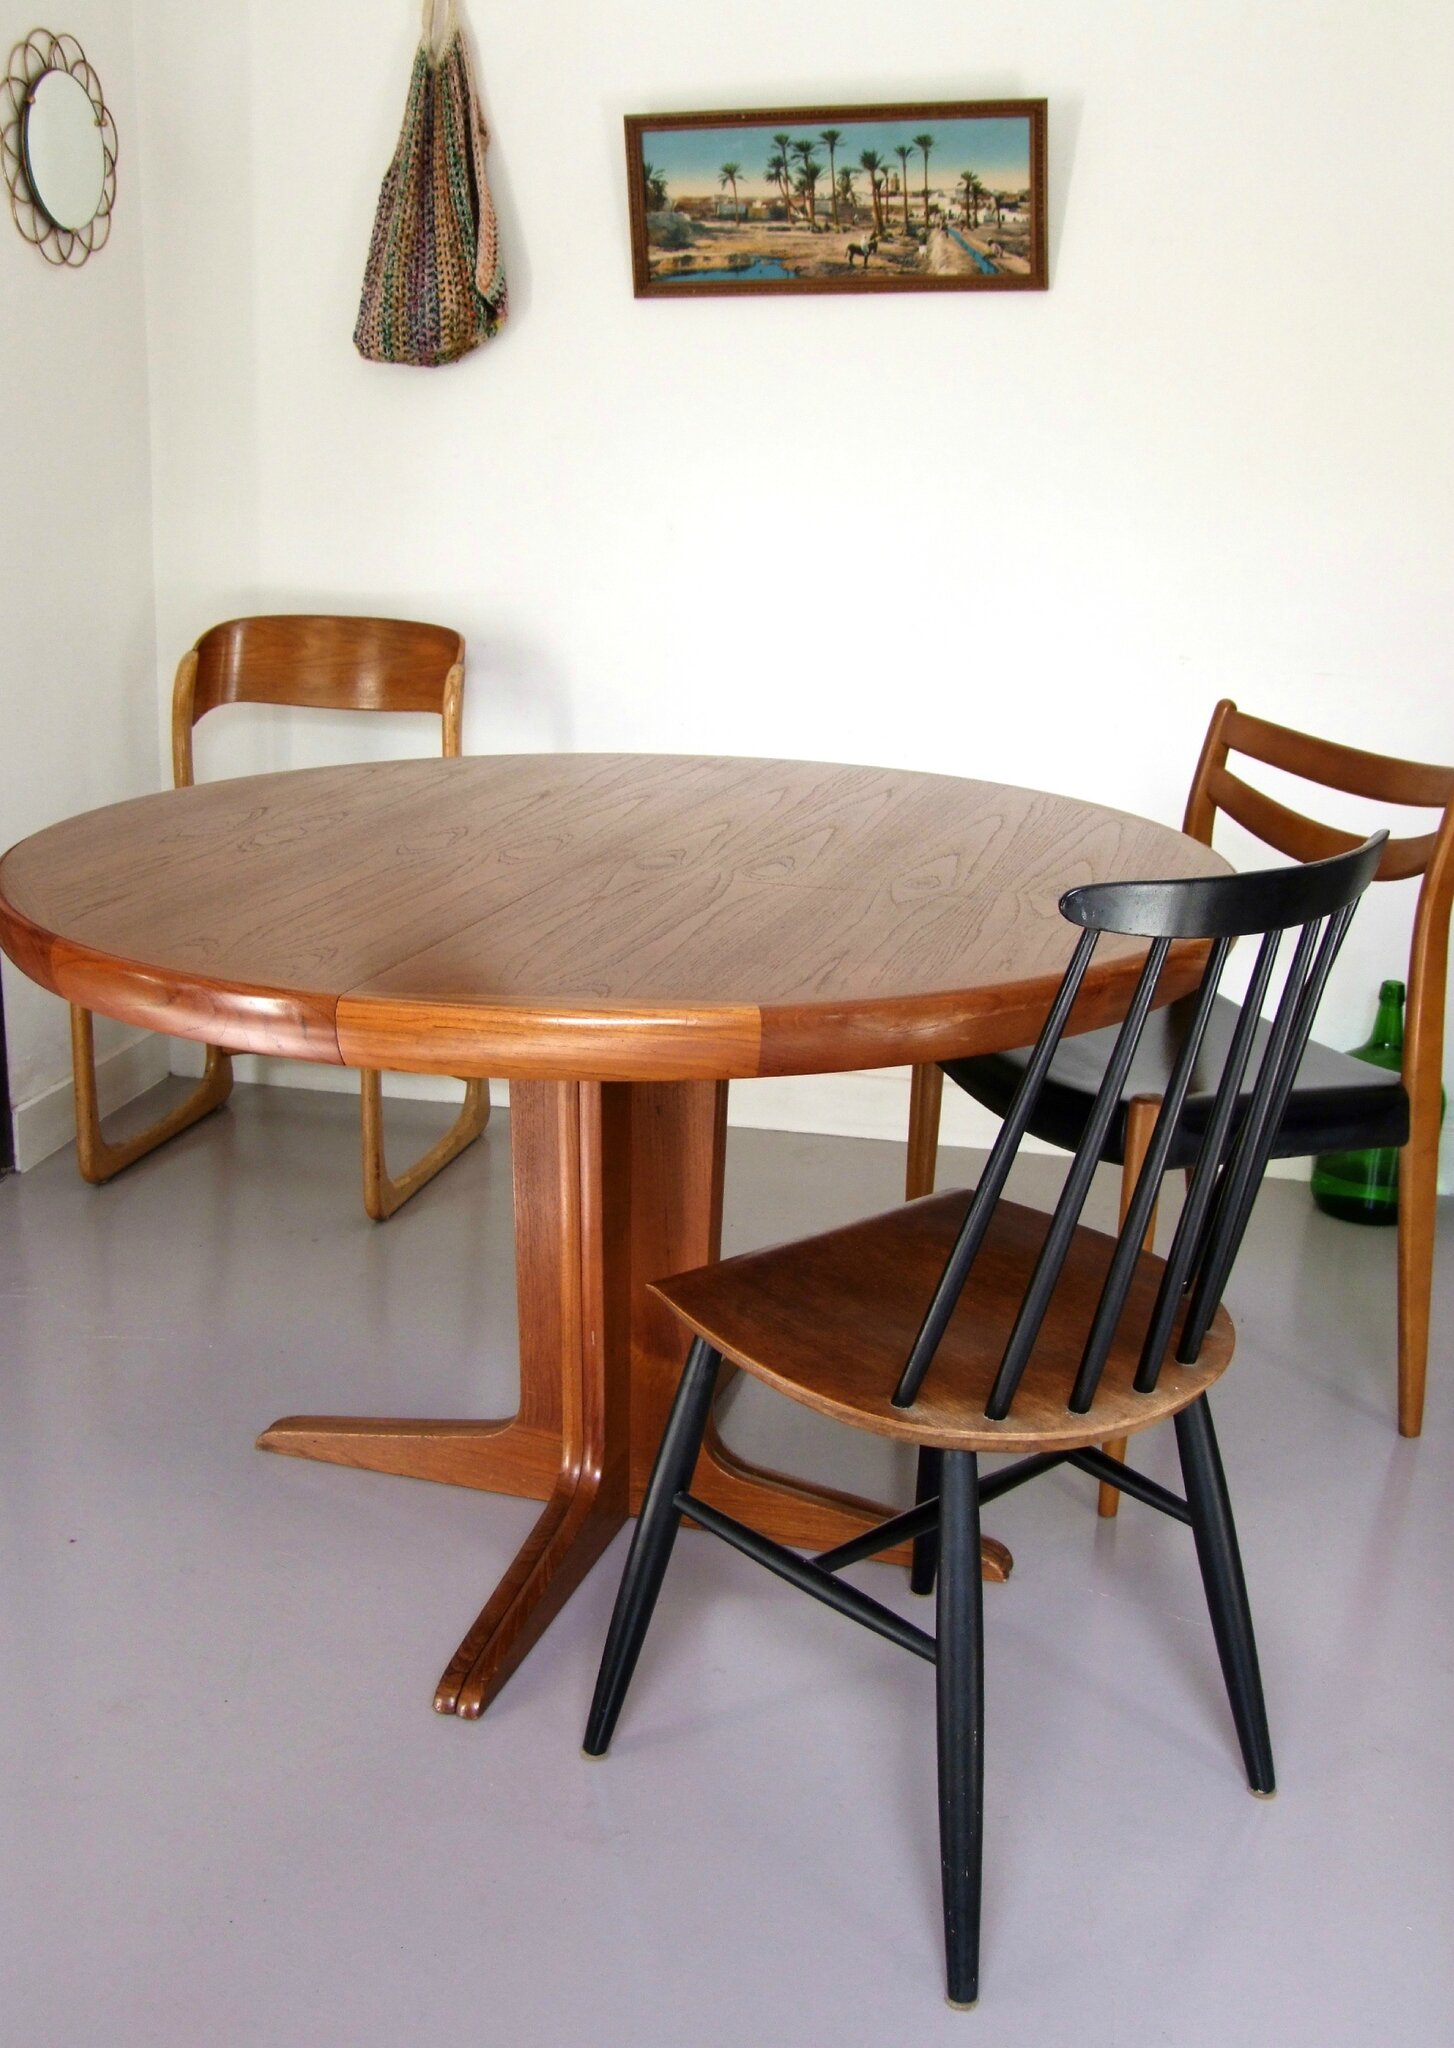 TABLE RONDE EXTENSIBLE SCANDINAVE Kofod